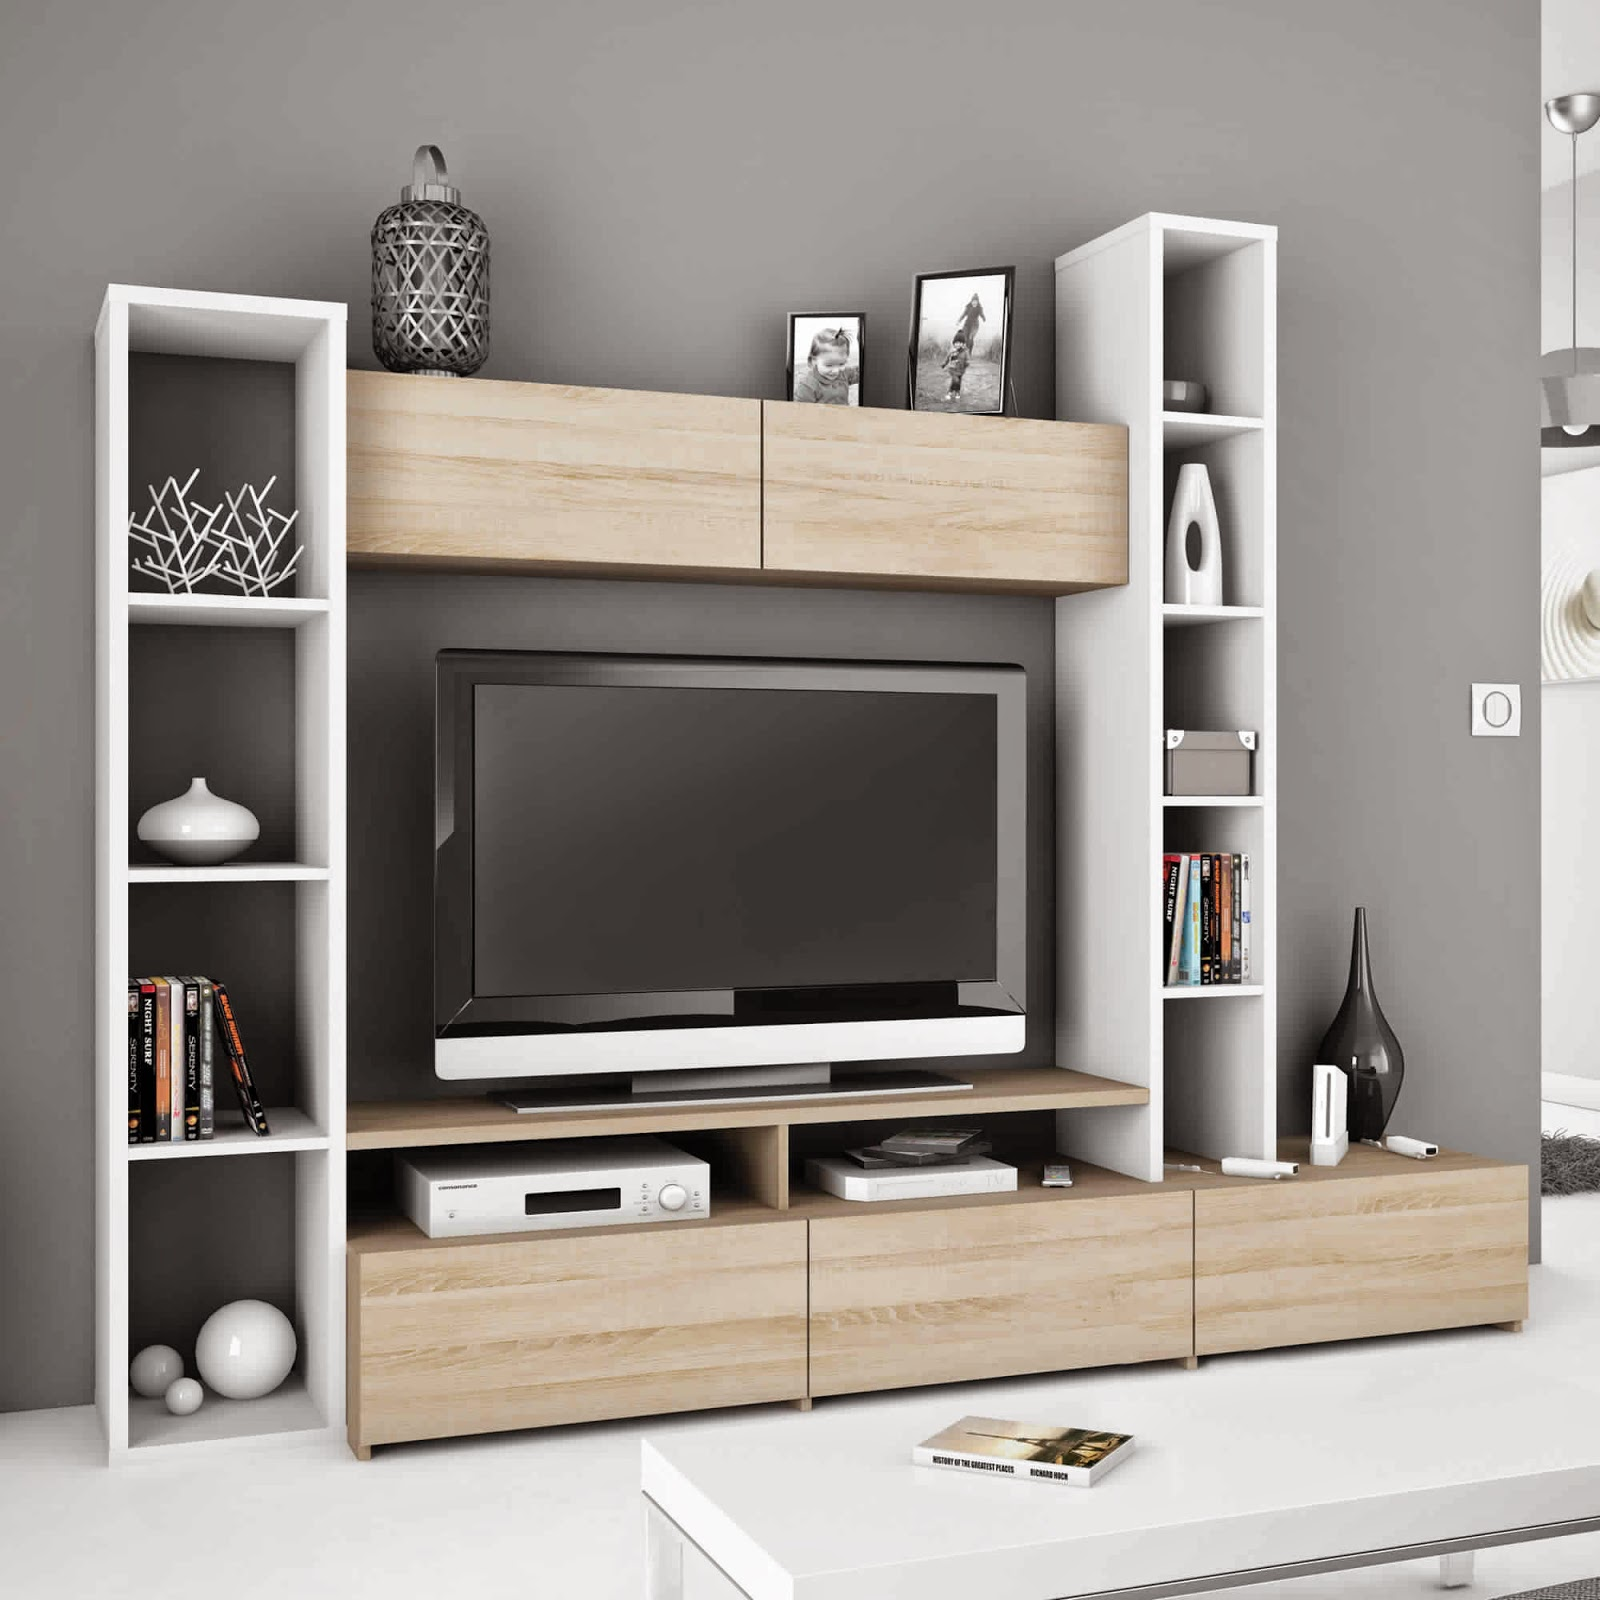 meuble tv avec rangement pas cher royal sofa id e de. Black Bedroom Furniture Sets. Home Design Ideas